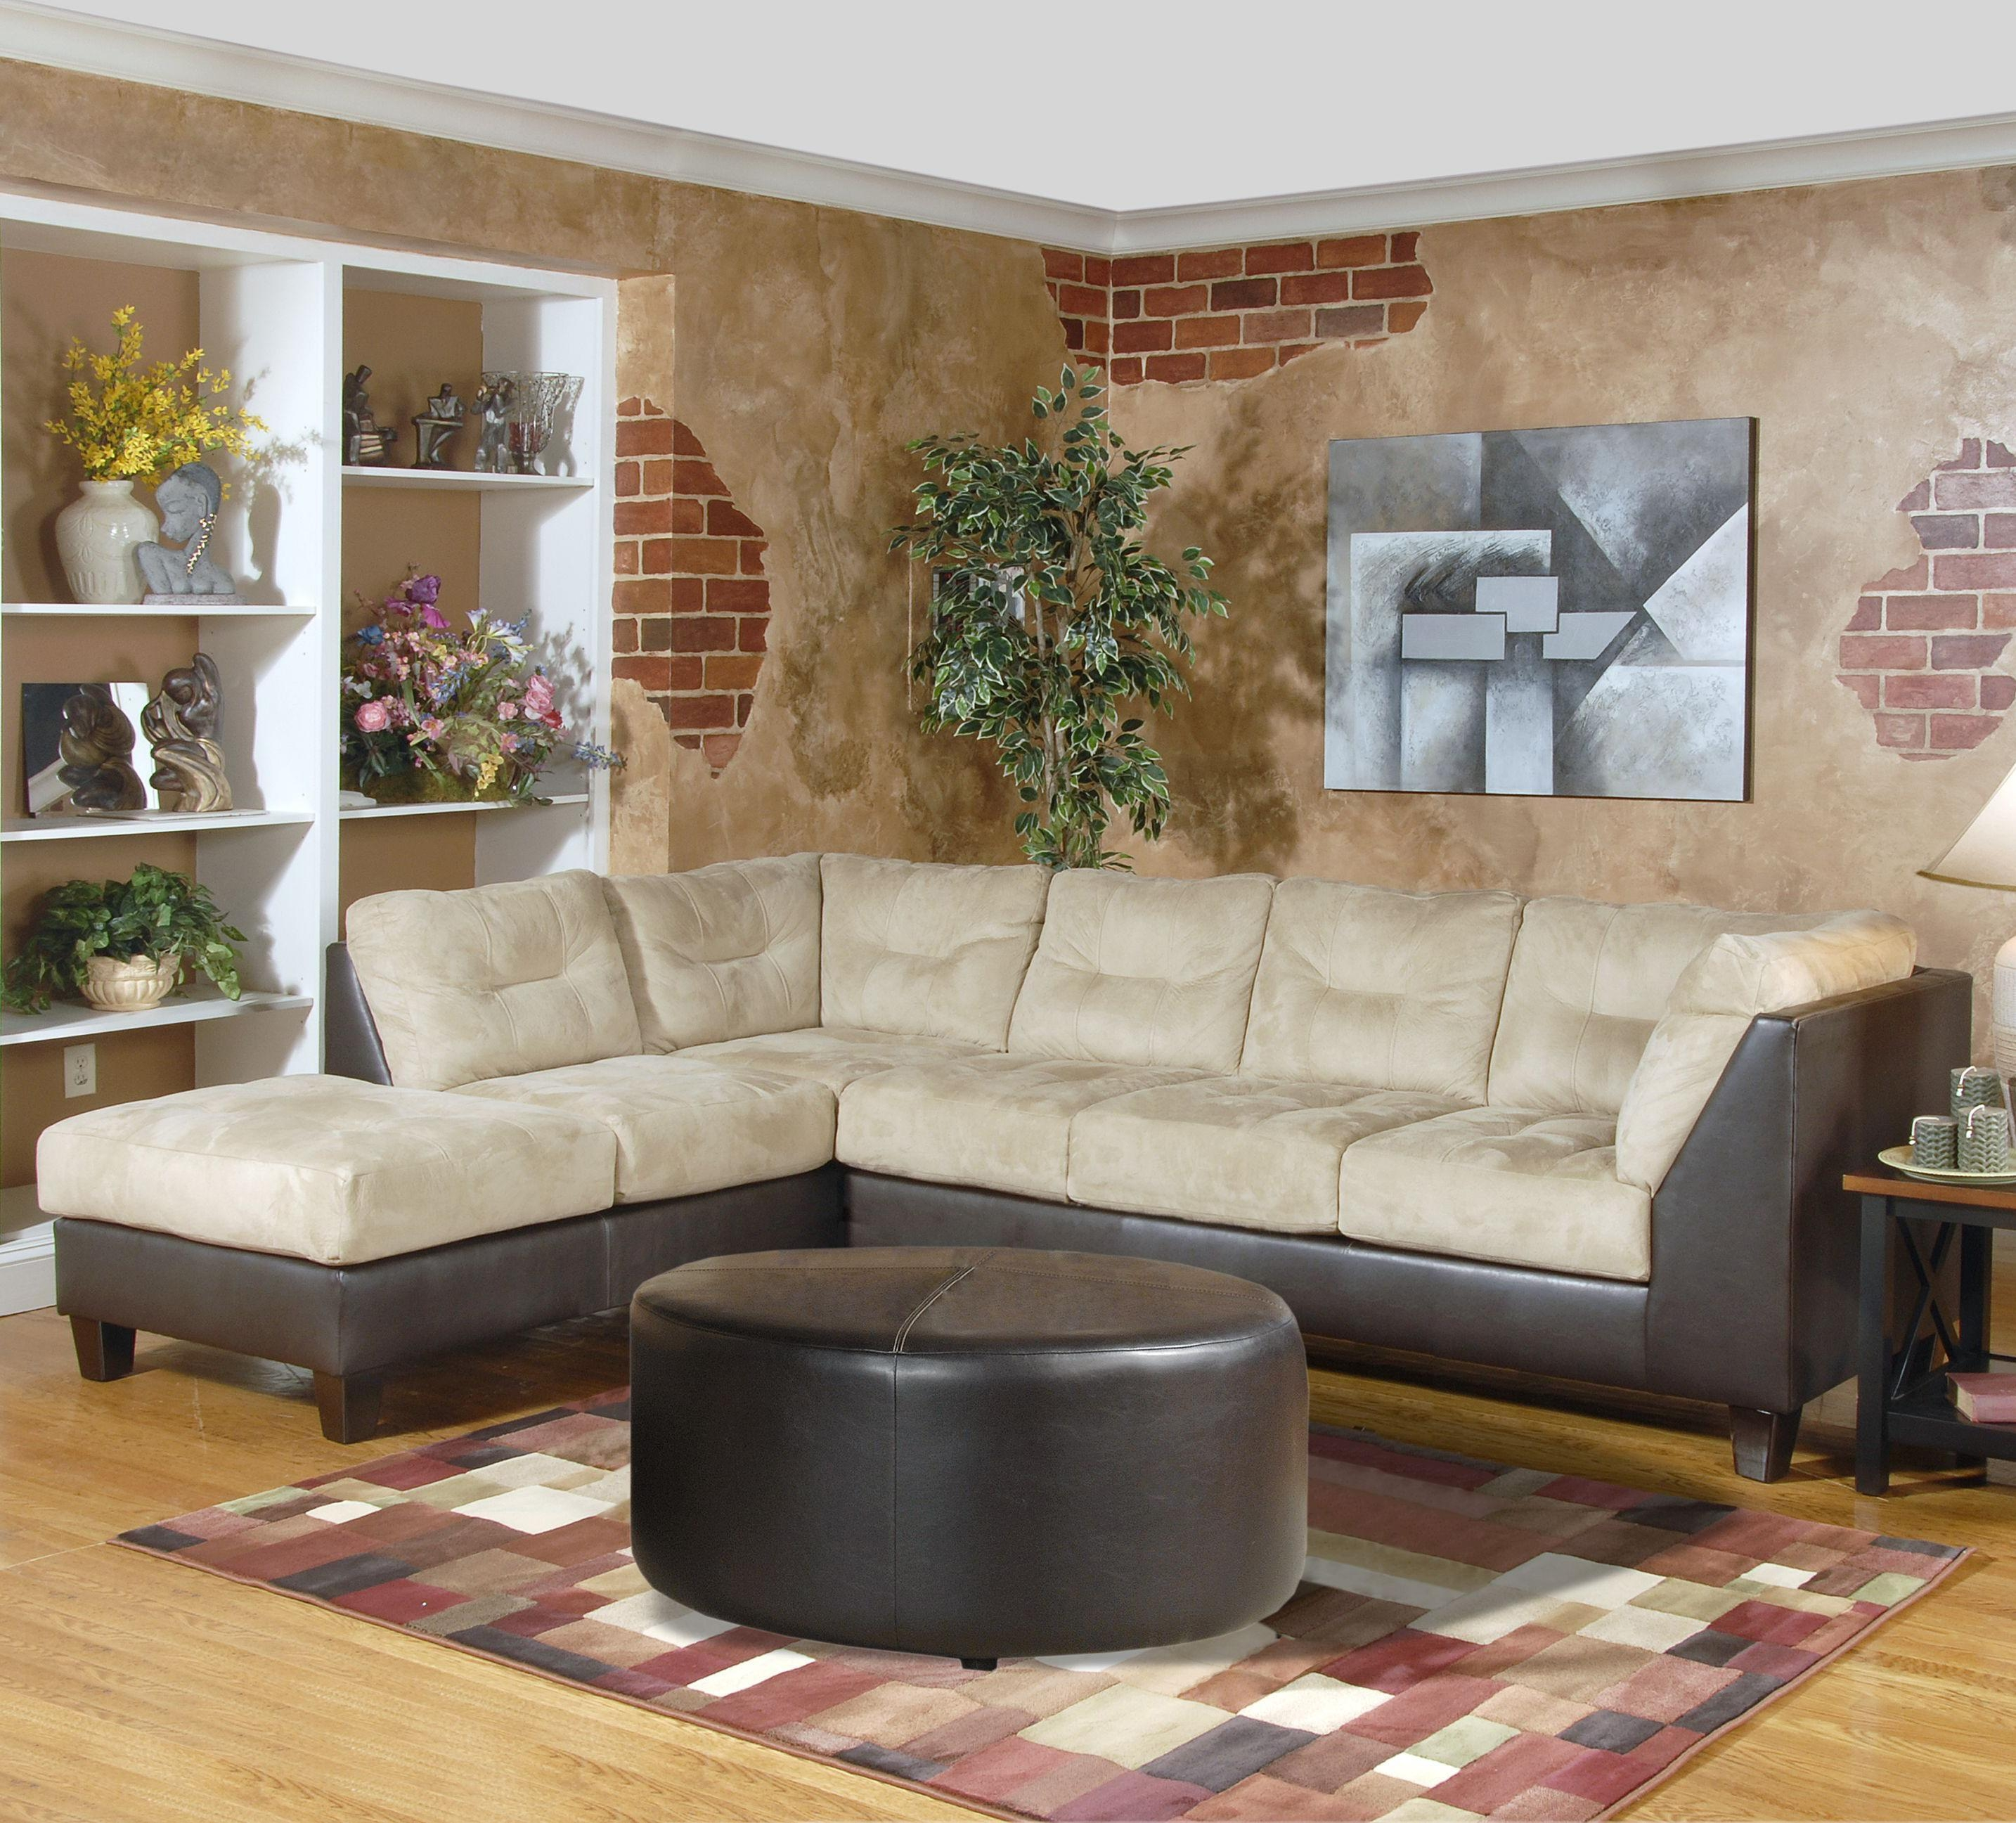 Serta Leather Sectional Sofa | Tehranmix Decoration Pertaining To Serta Sectional (View 11 of 20)